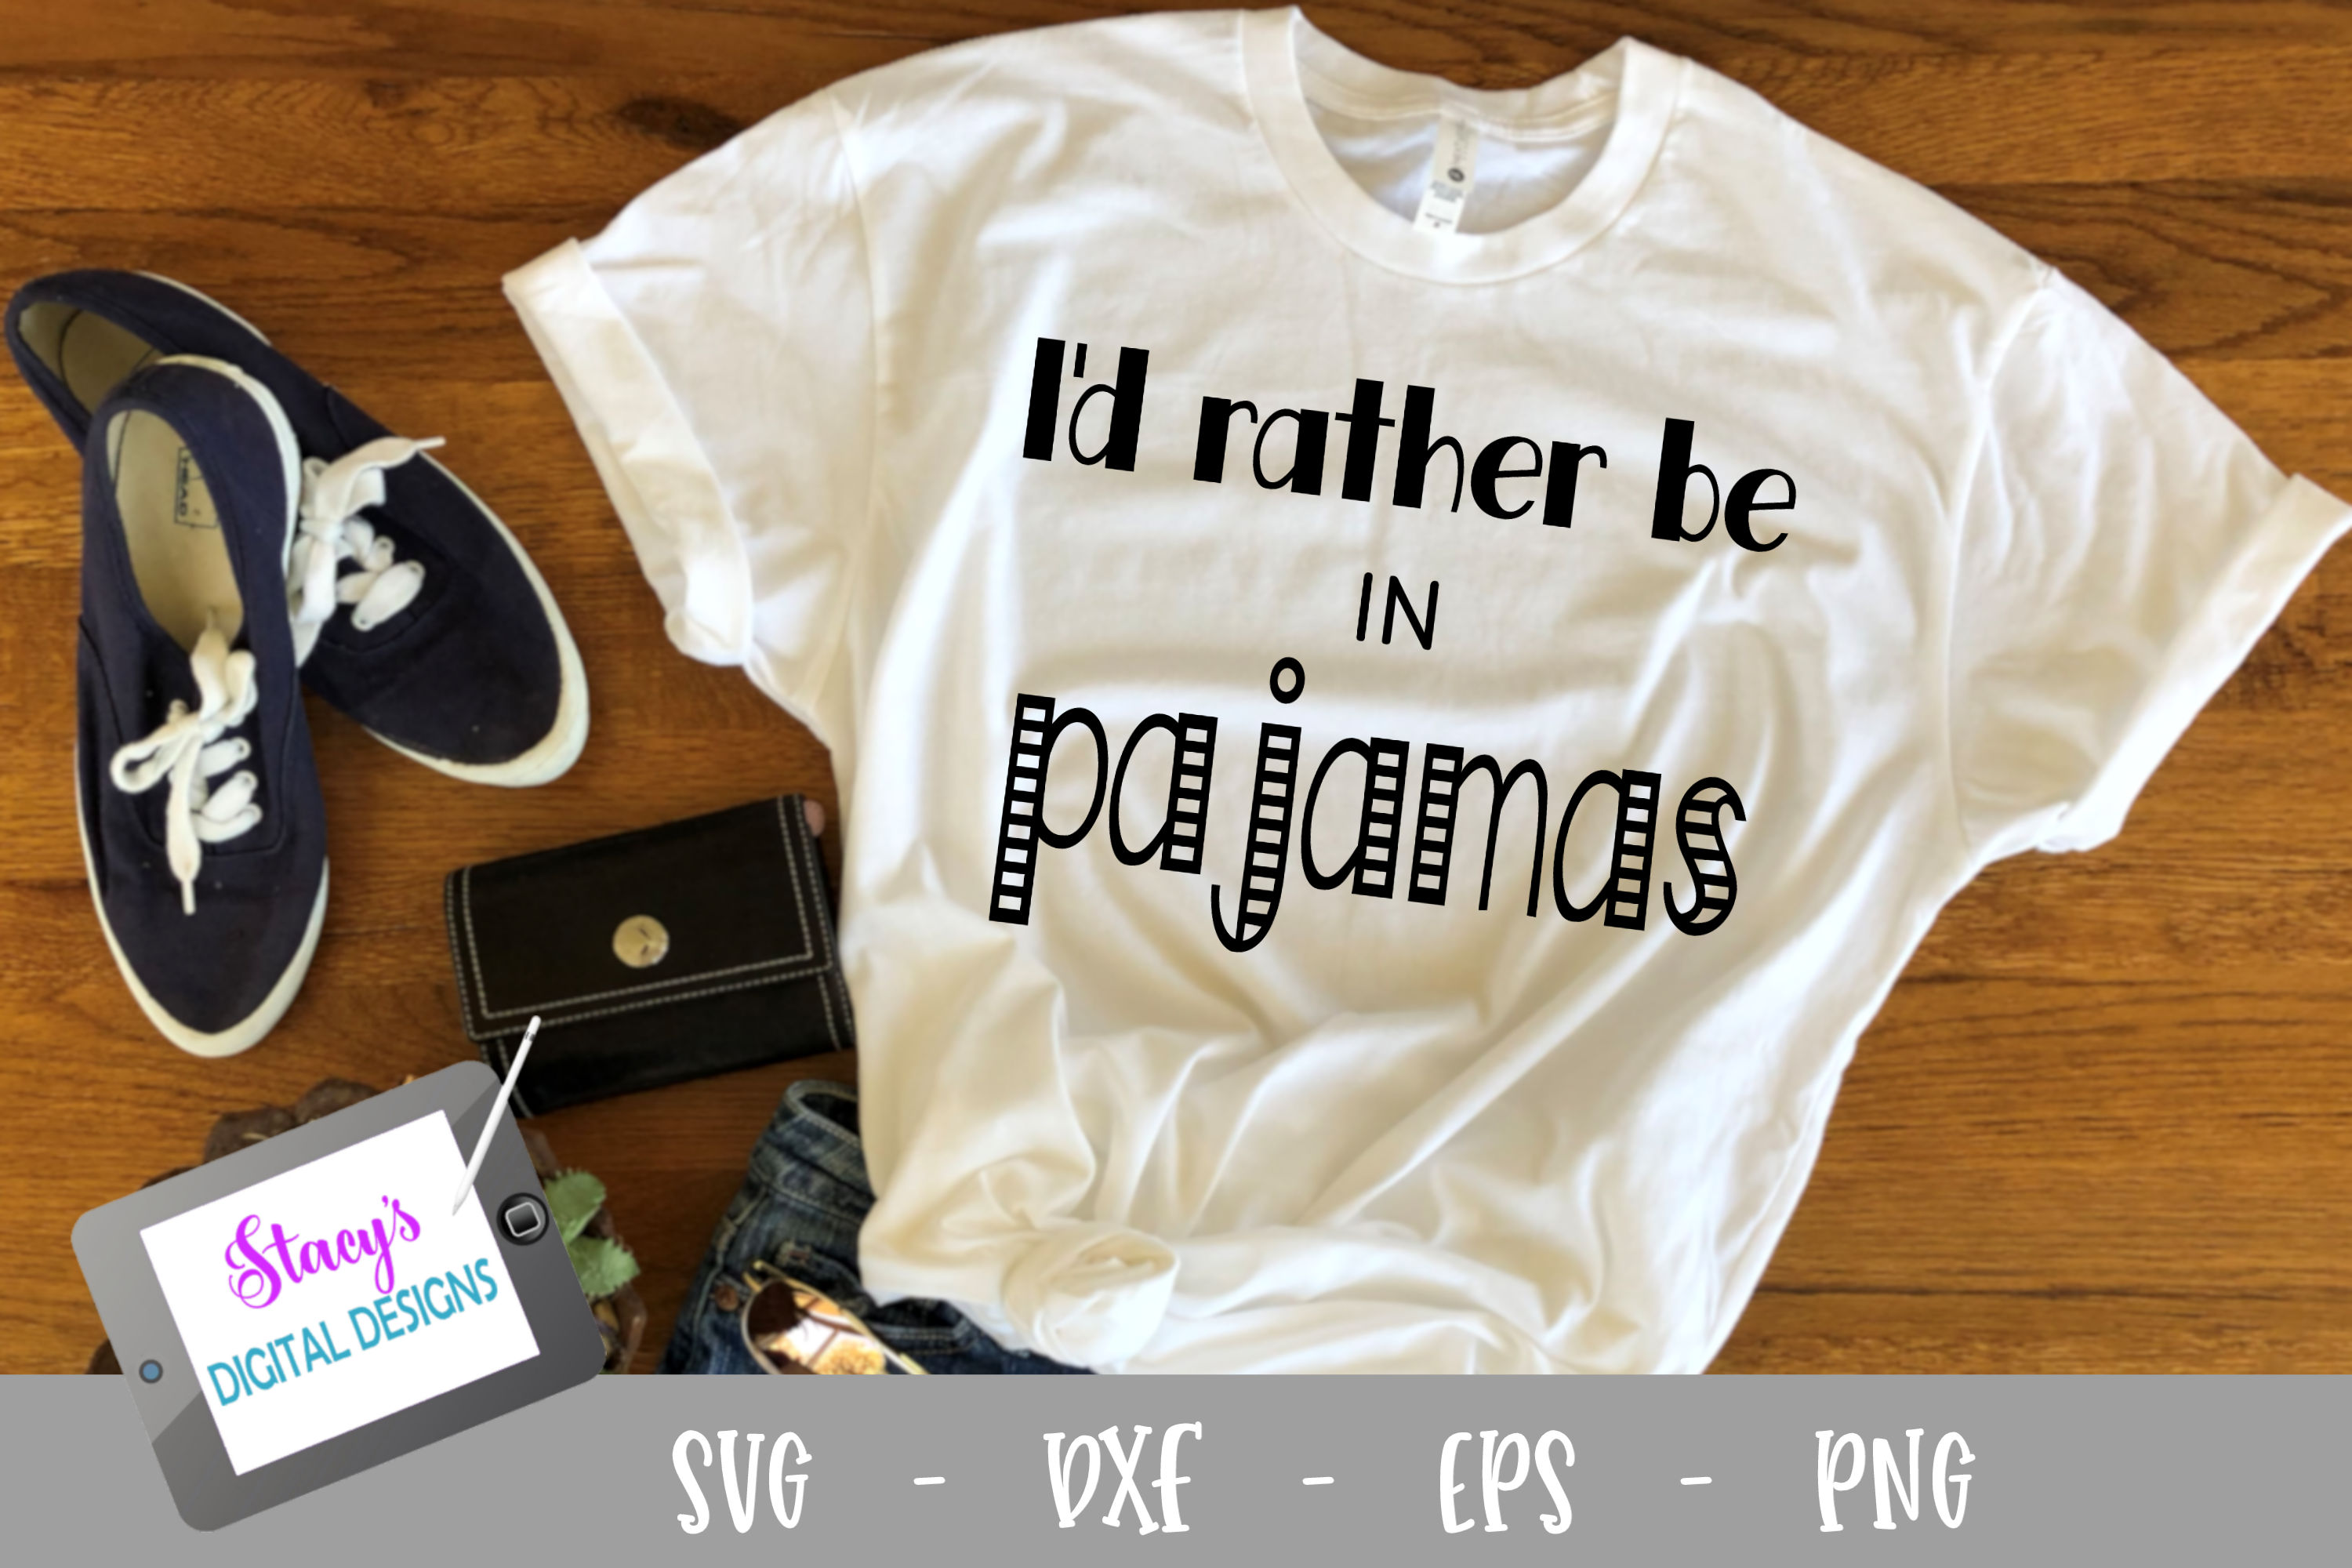 I'd rather be in pajamas SVG - Funny SVG example image 2